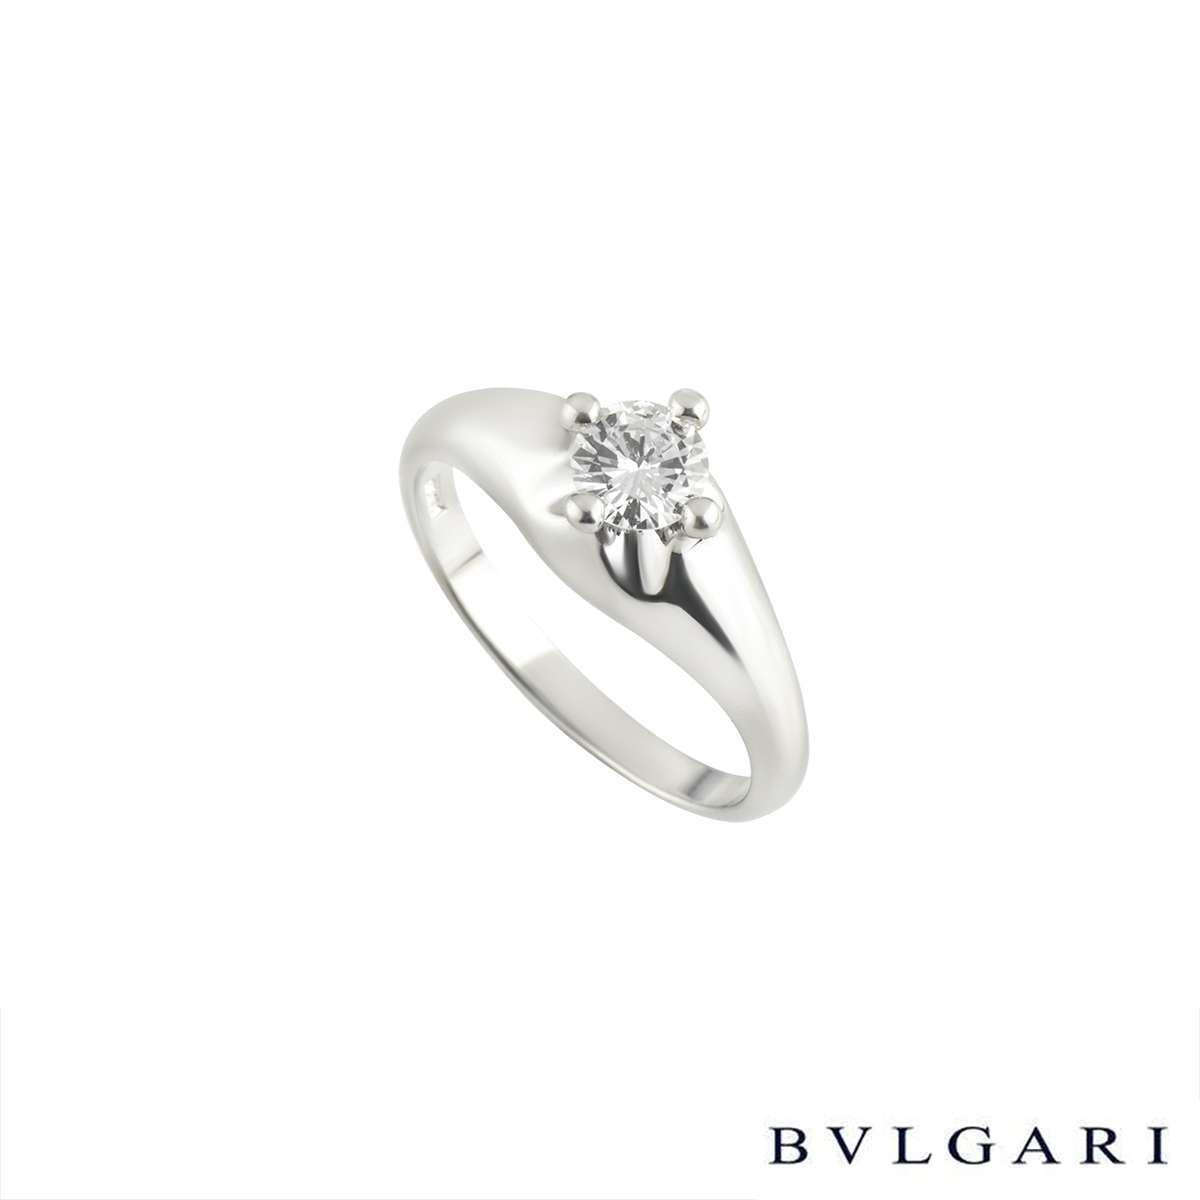 Bvlgari Corona White Gold Diamond Ring